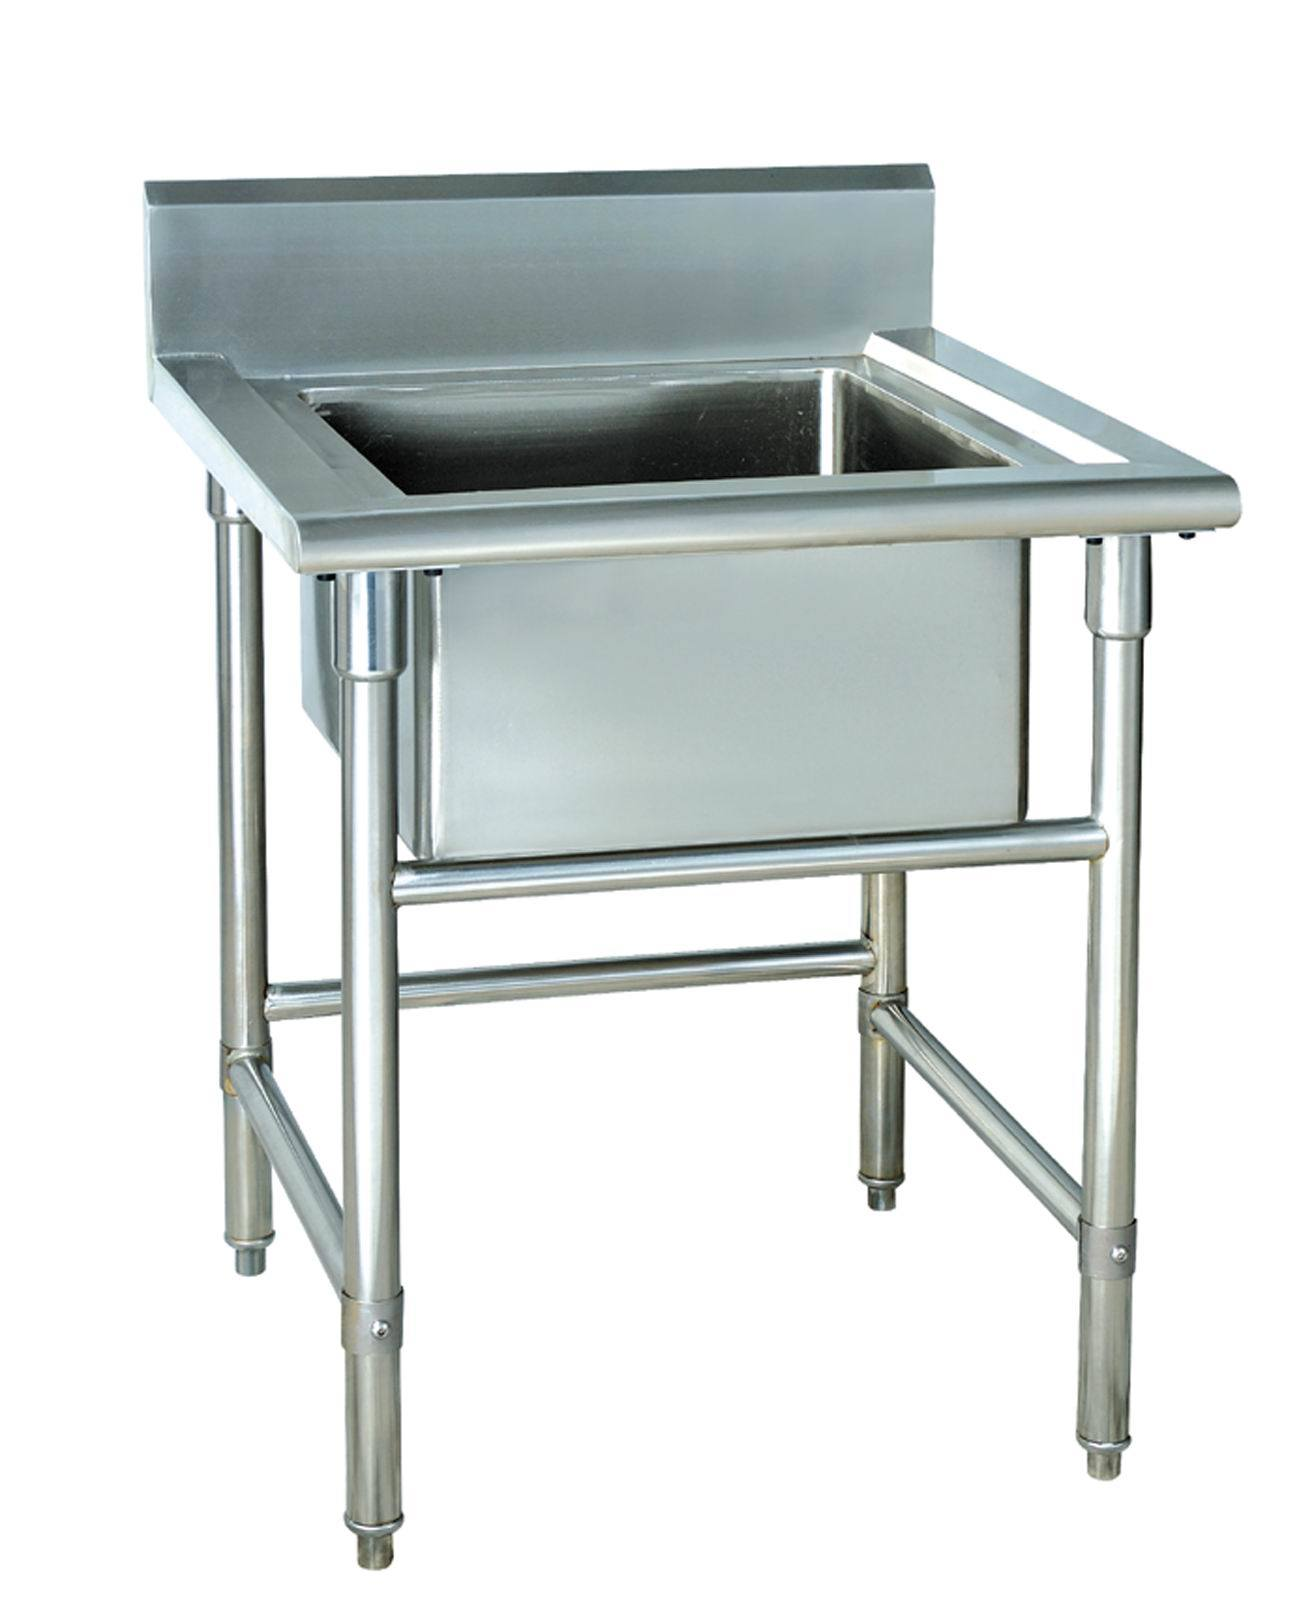 Stainless Steel Sink Bench Wash Basin